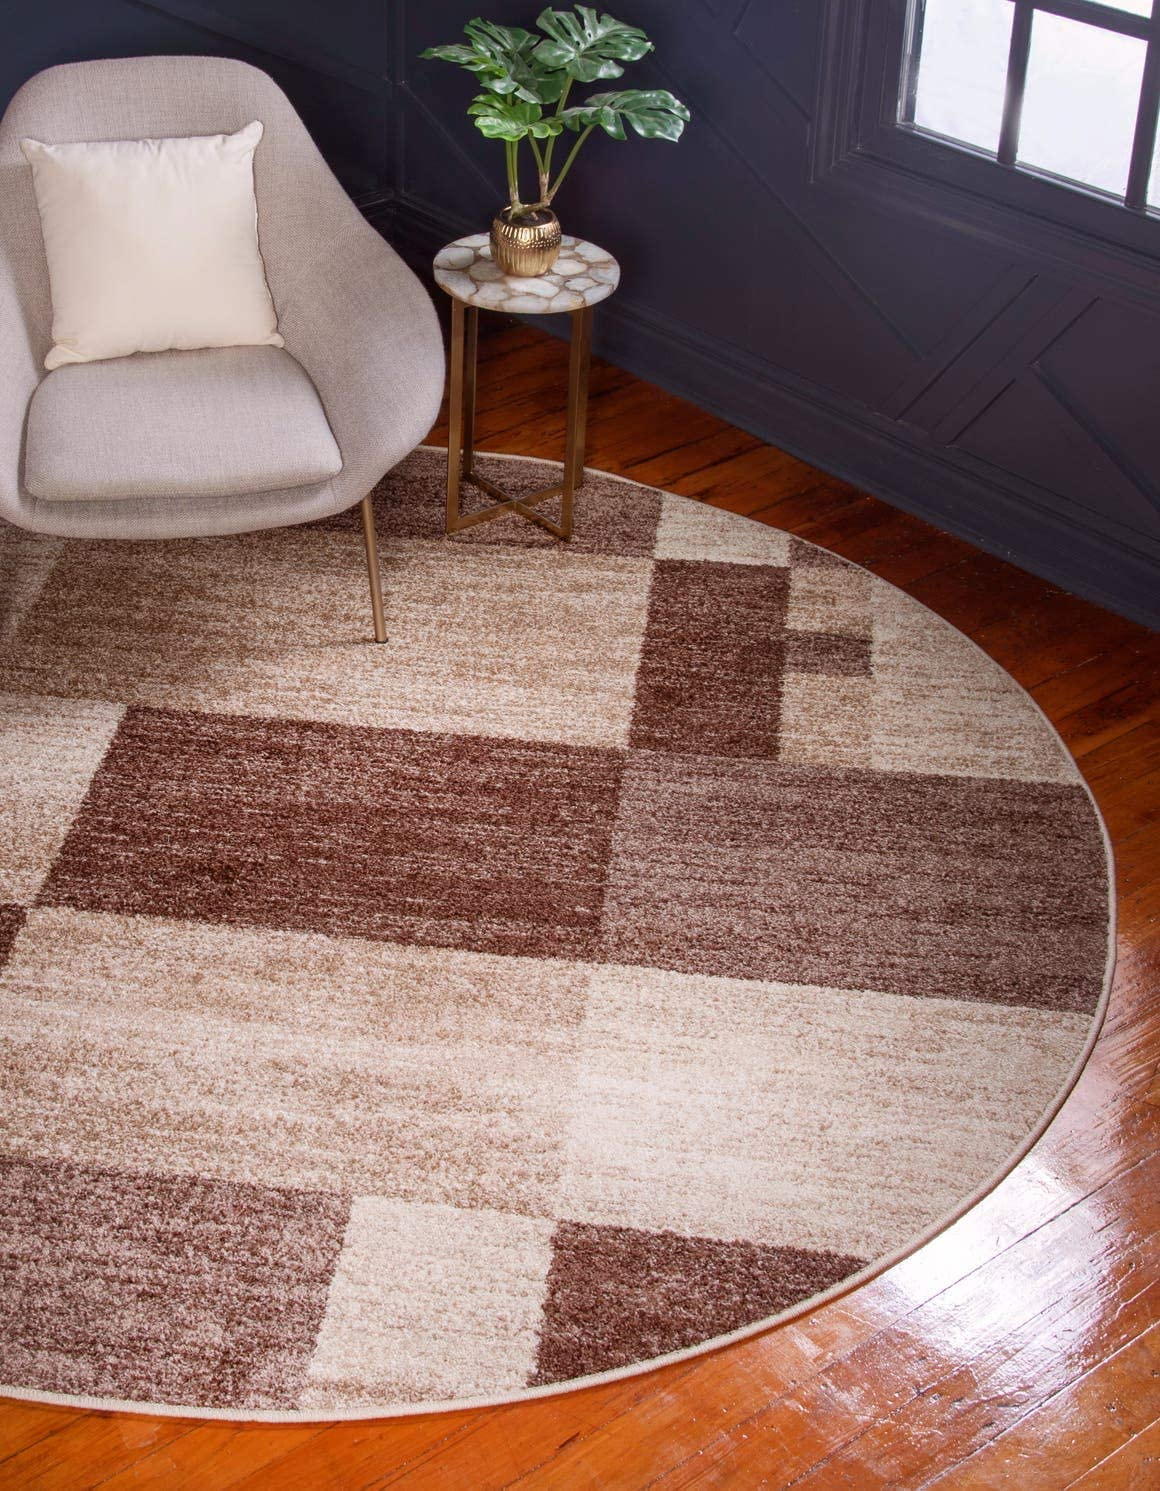 Unique Loom Autumn Collection Abstract Checkered Casual Warm Toned Light Brown Round Rug 8 0 x 8 0